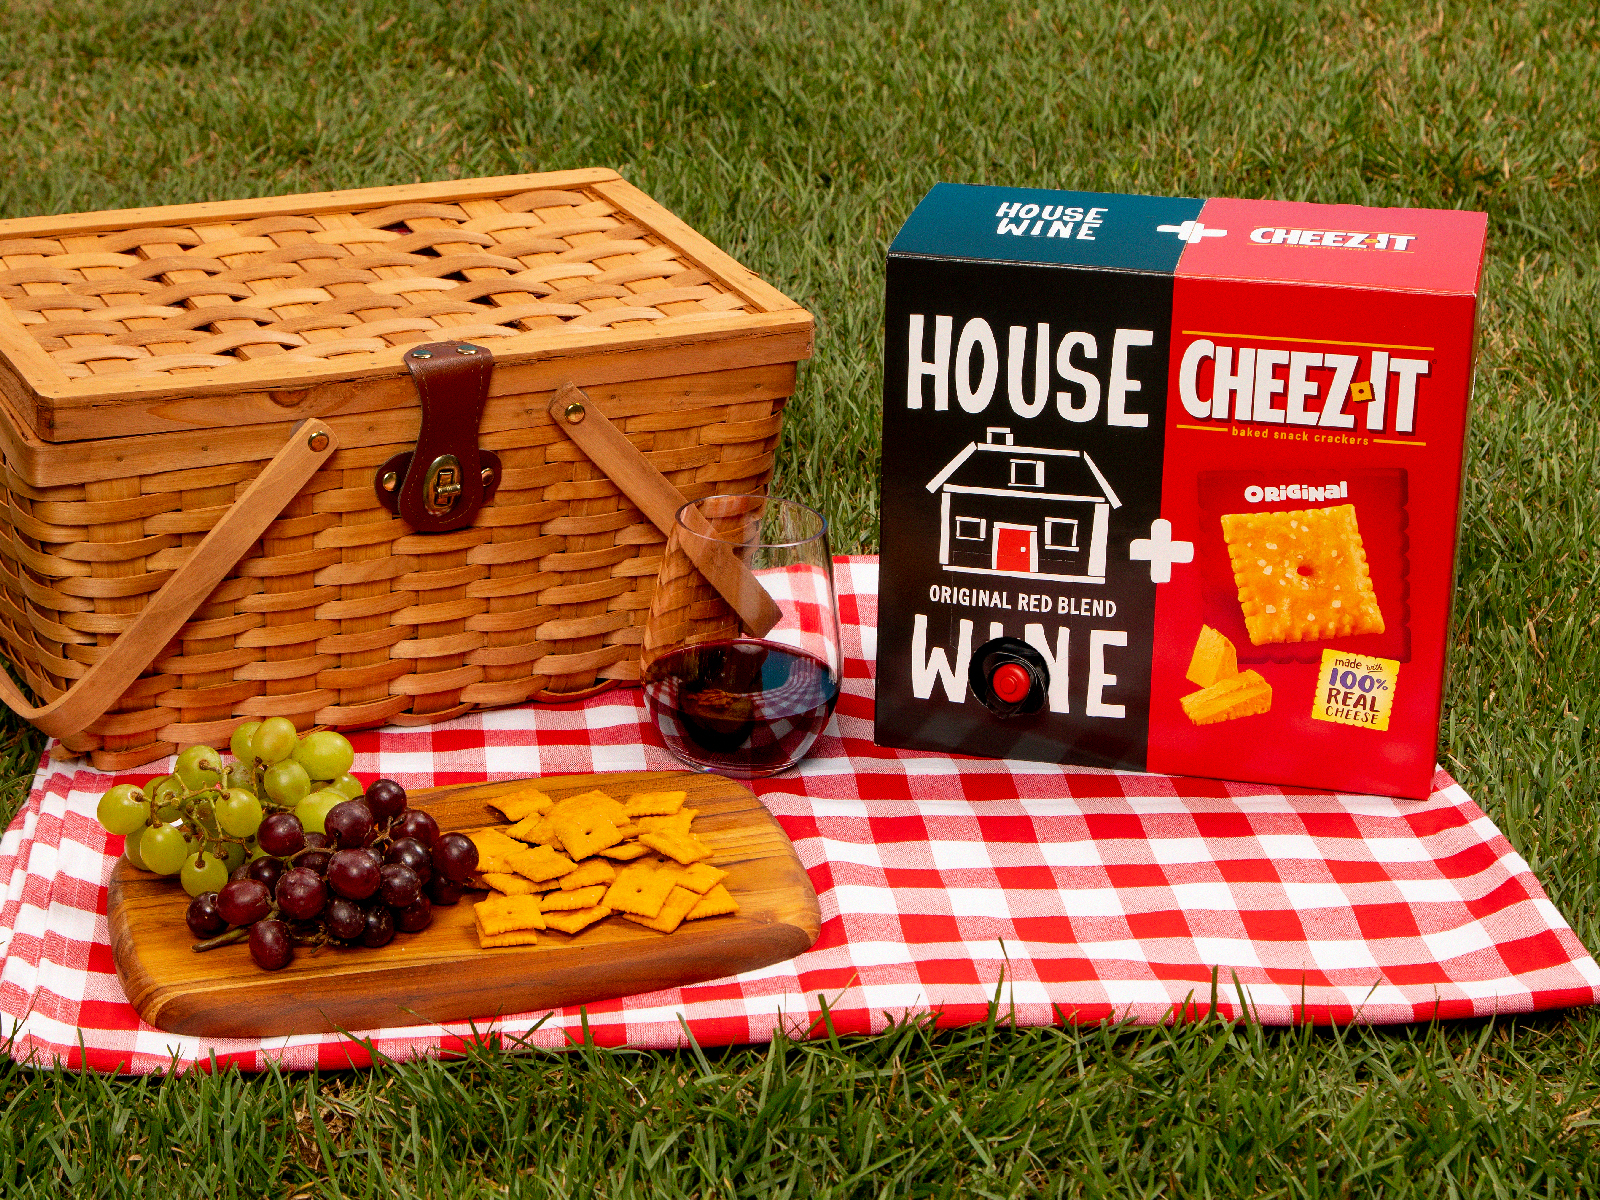 wine-cheez-it-box-FT-BLOG0719.jpg